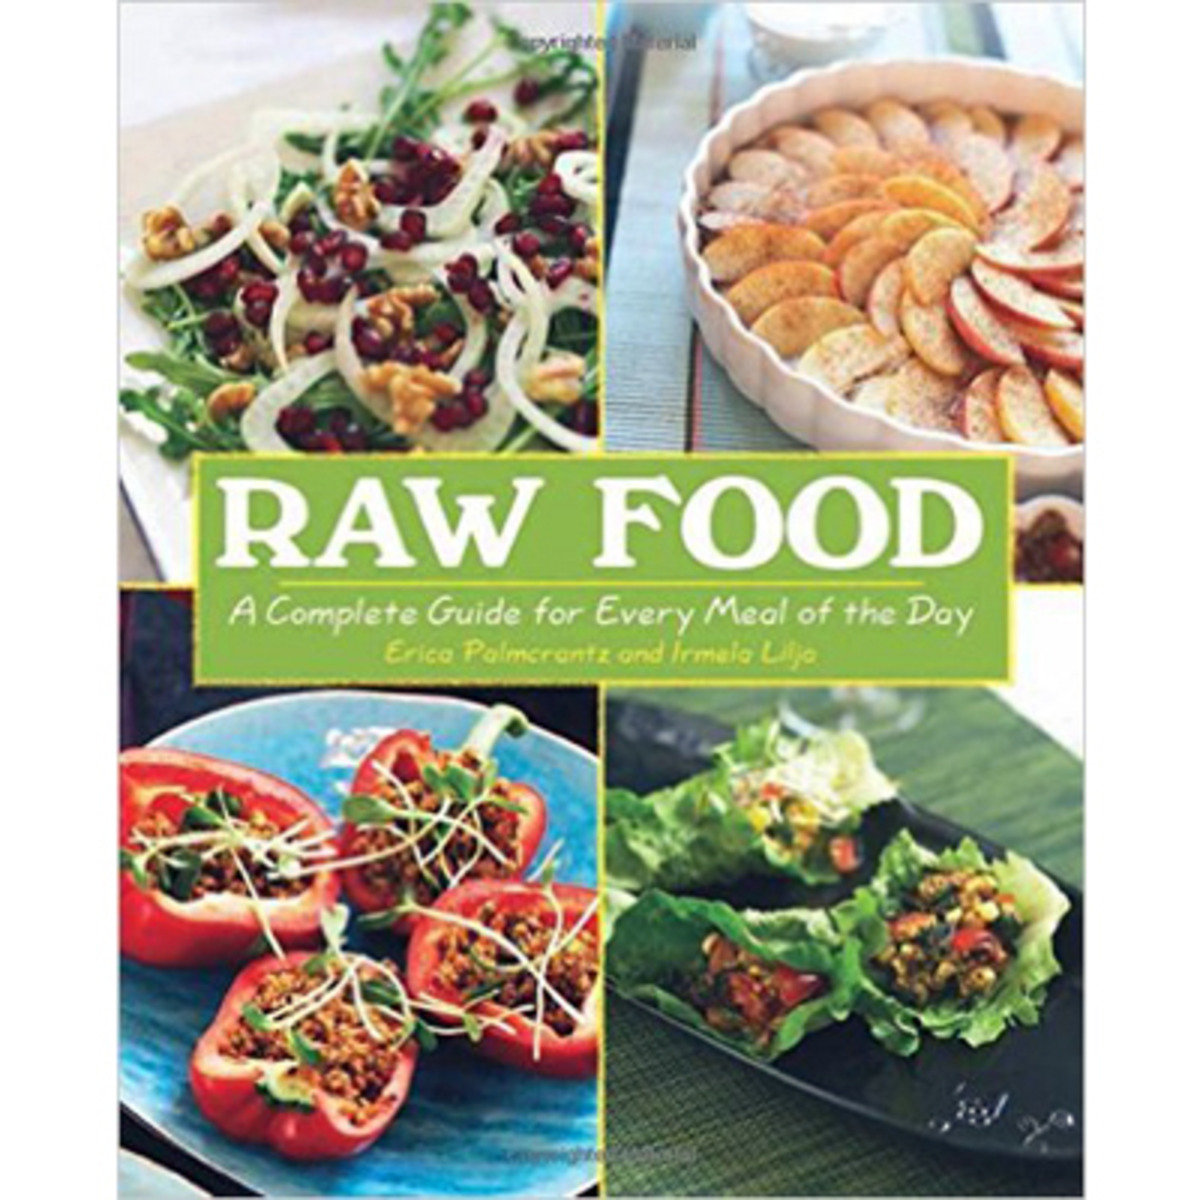 RAW FOOD: A Complete Guide for Every Meal of the Day 9781602399488